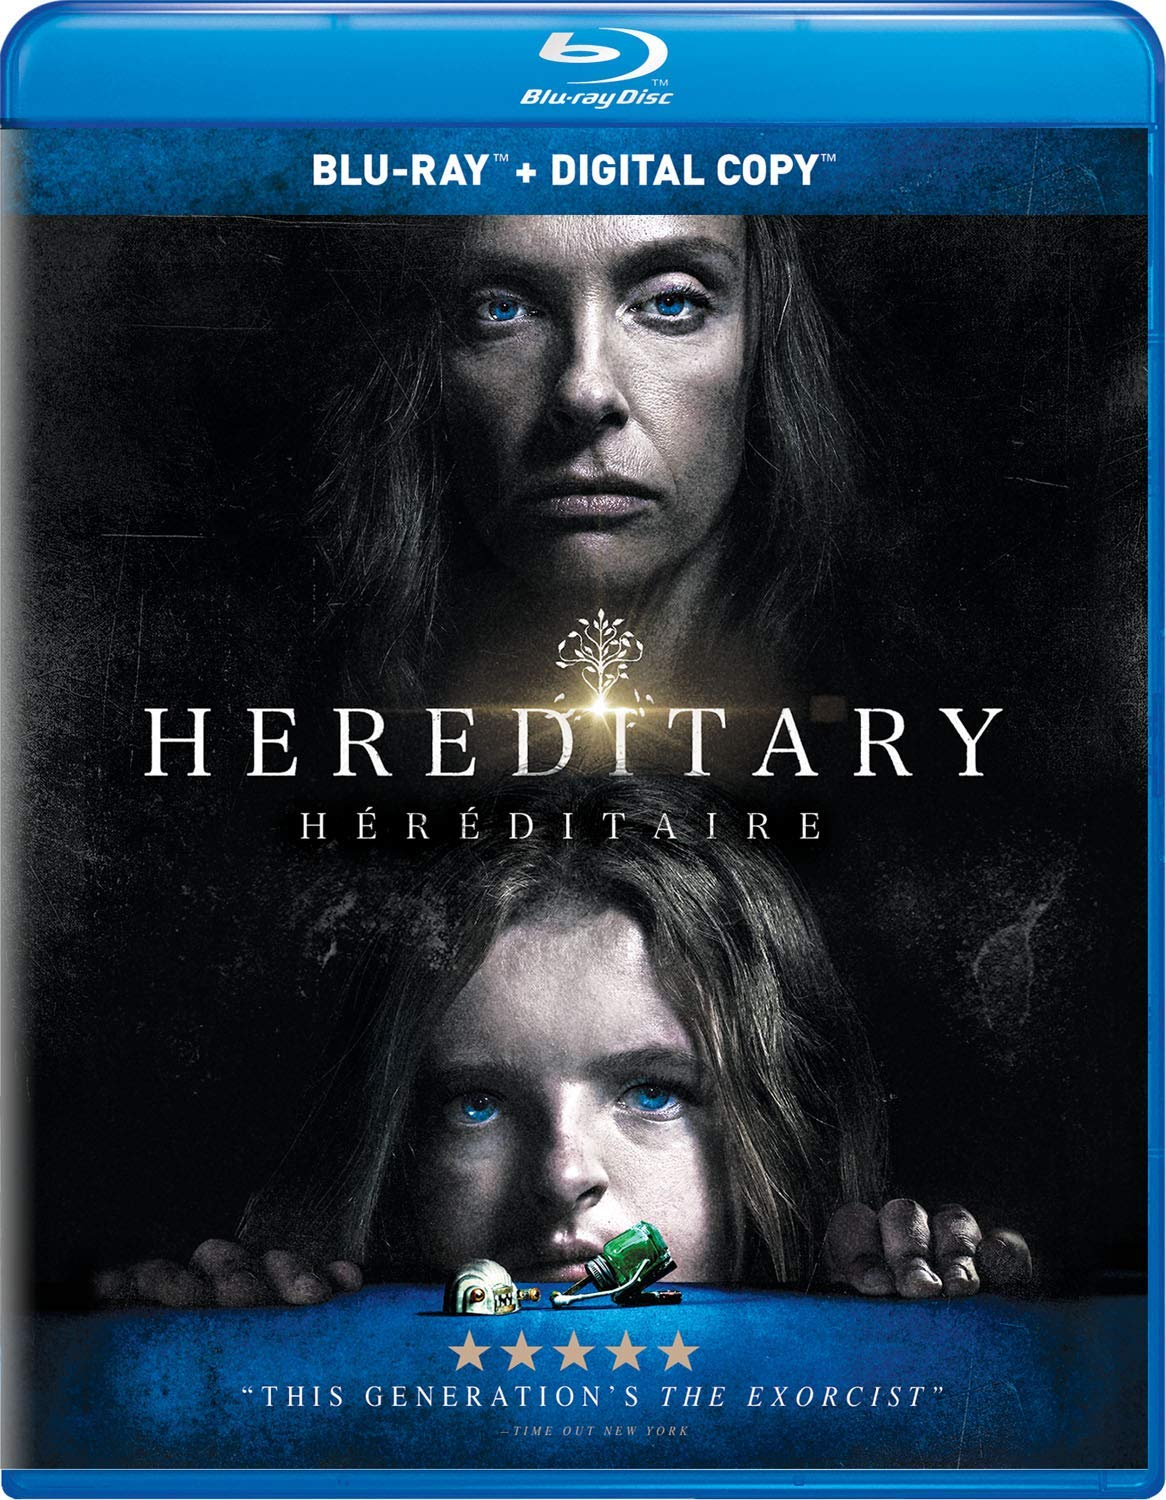 Hereditary Blu-ray